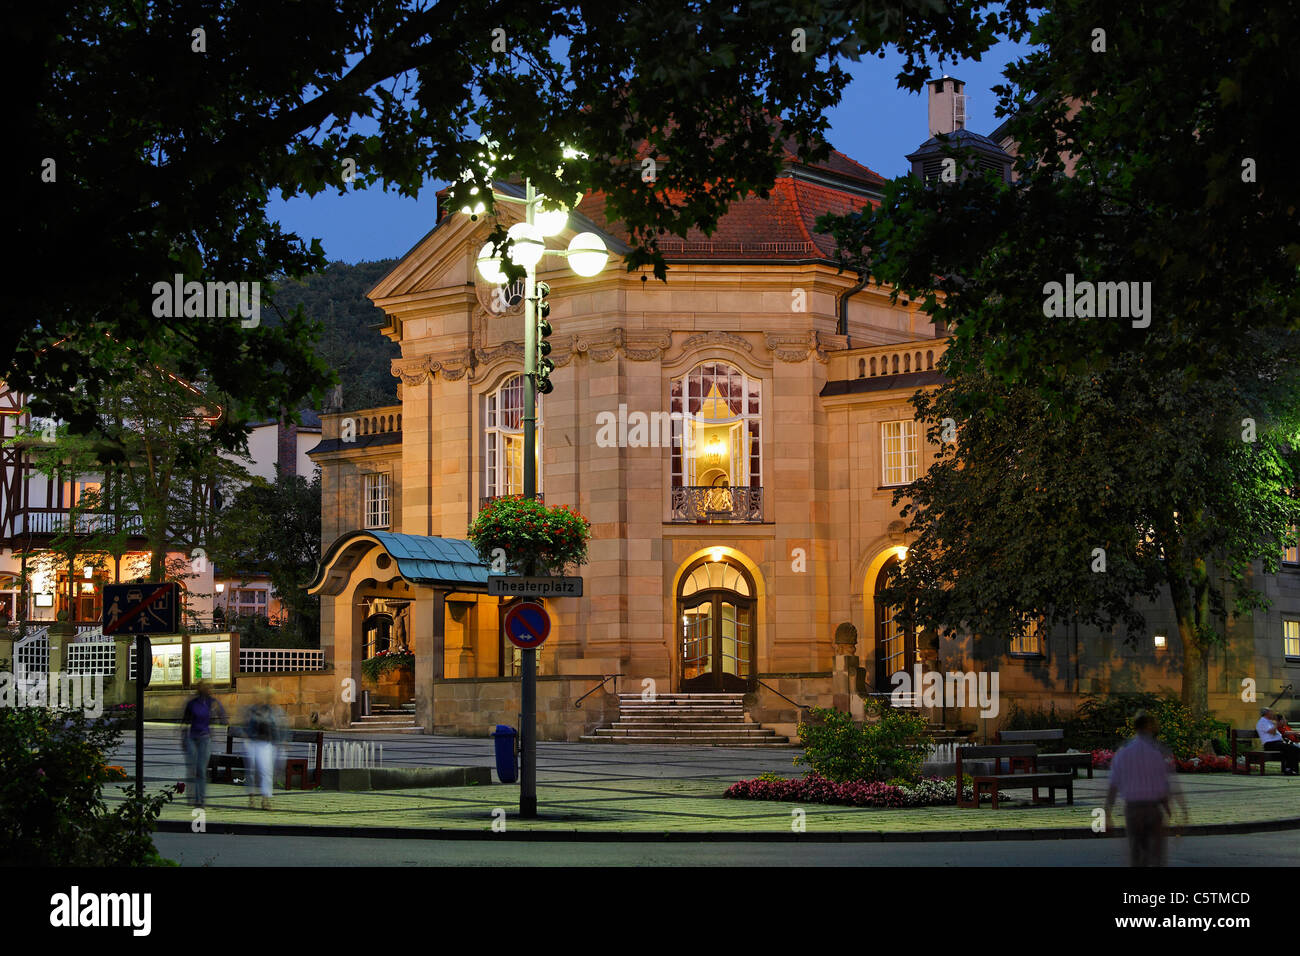 Germany, Bavaria, Lower Franconia, Rhoen, Bad kissingen, View of art nouveau theatre - Stock Image